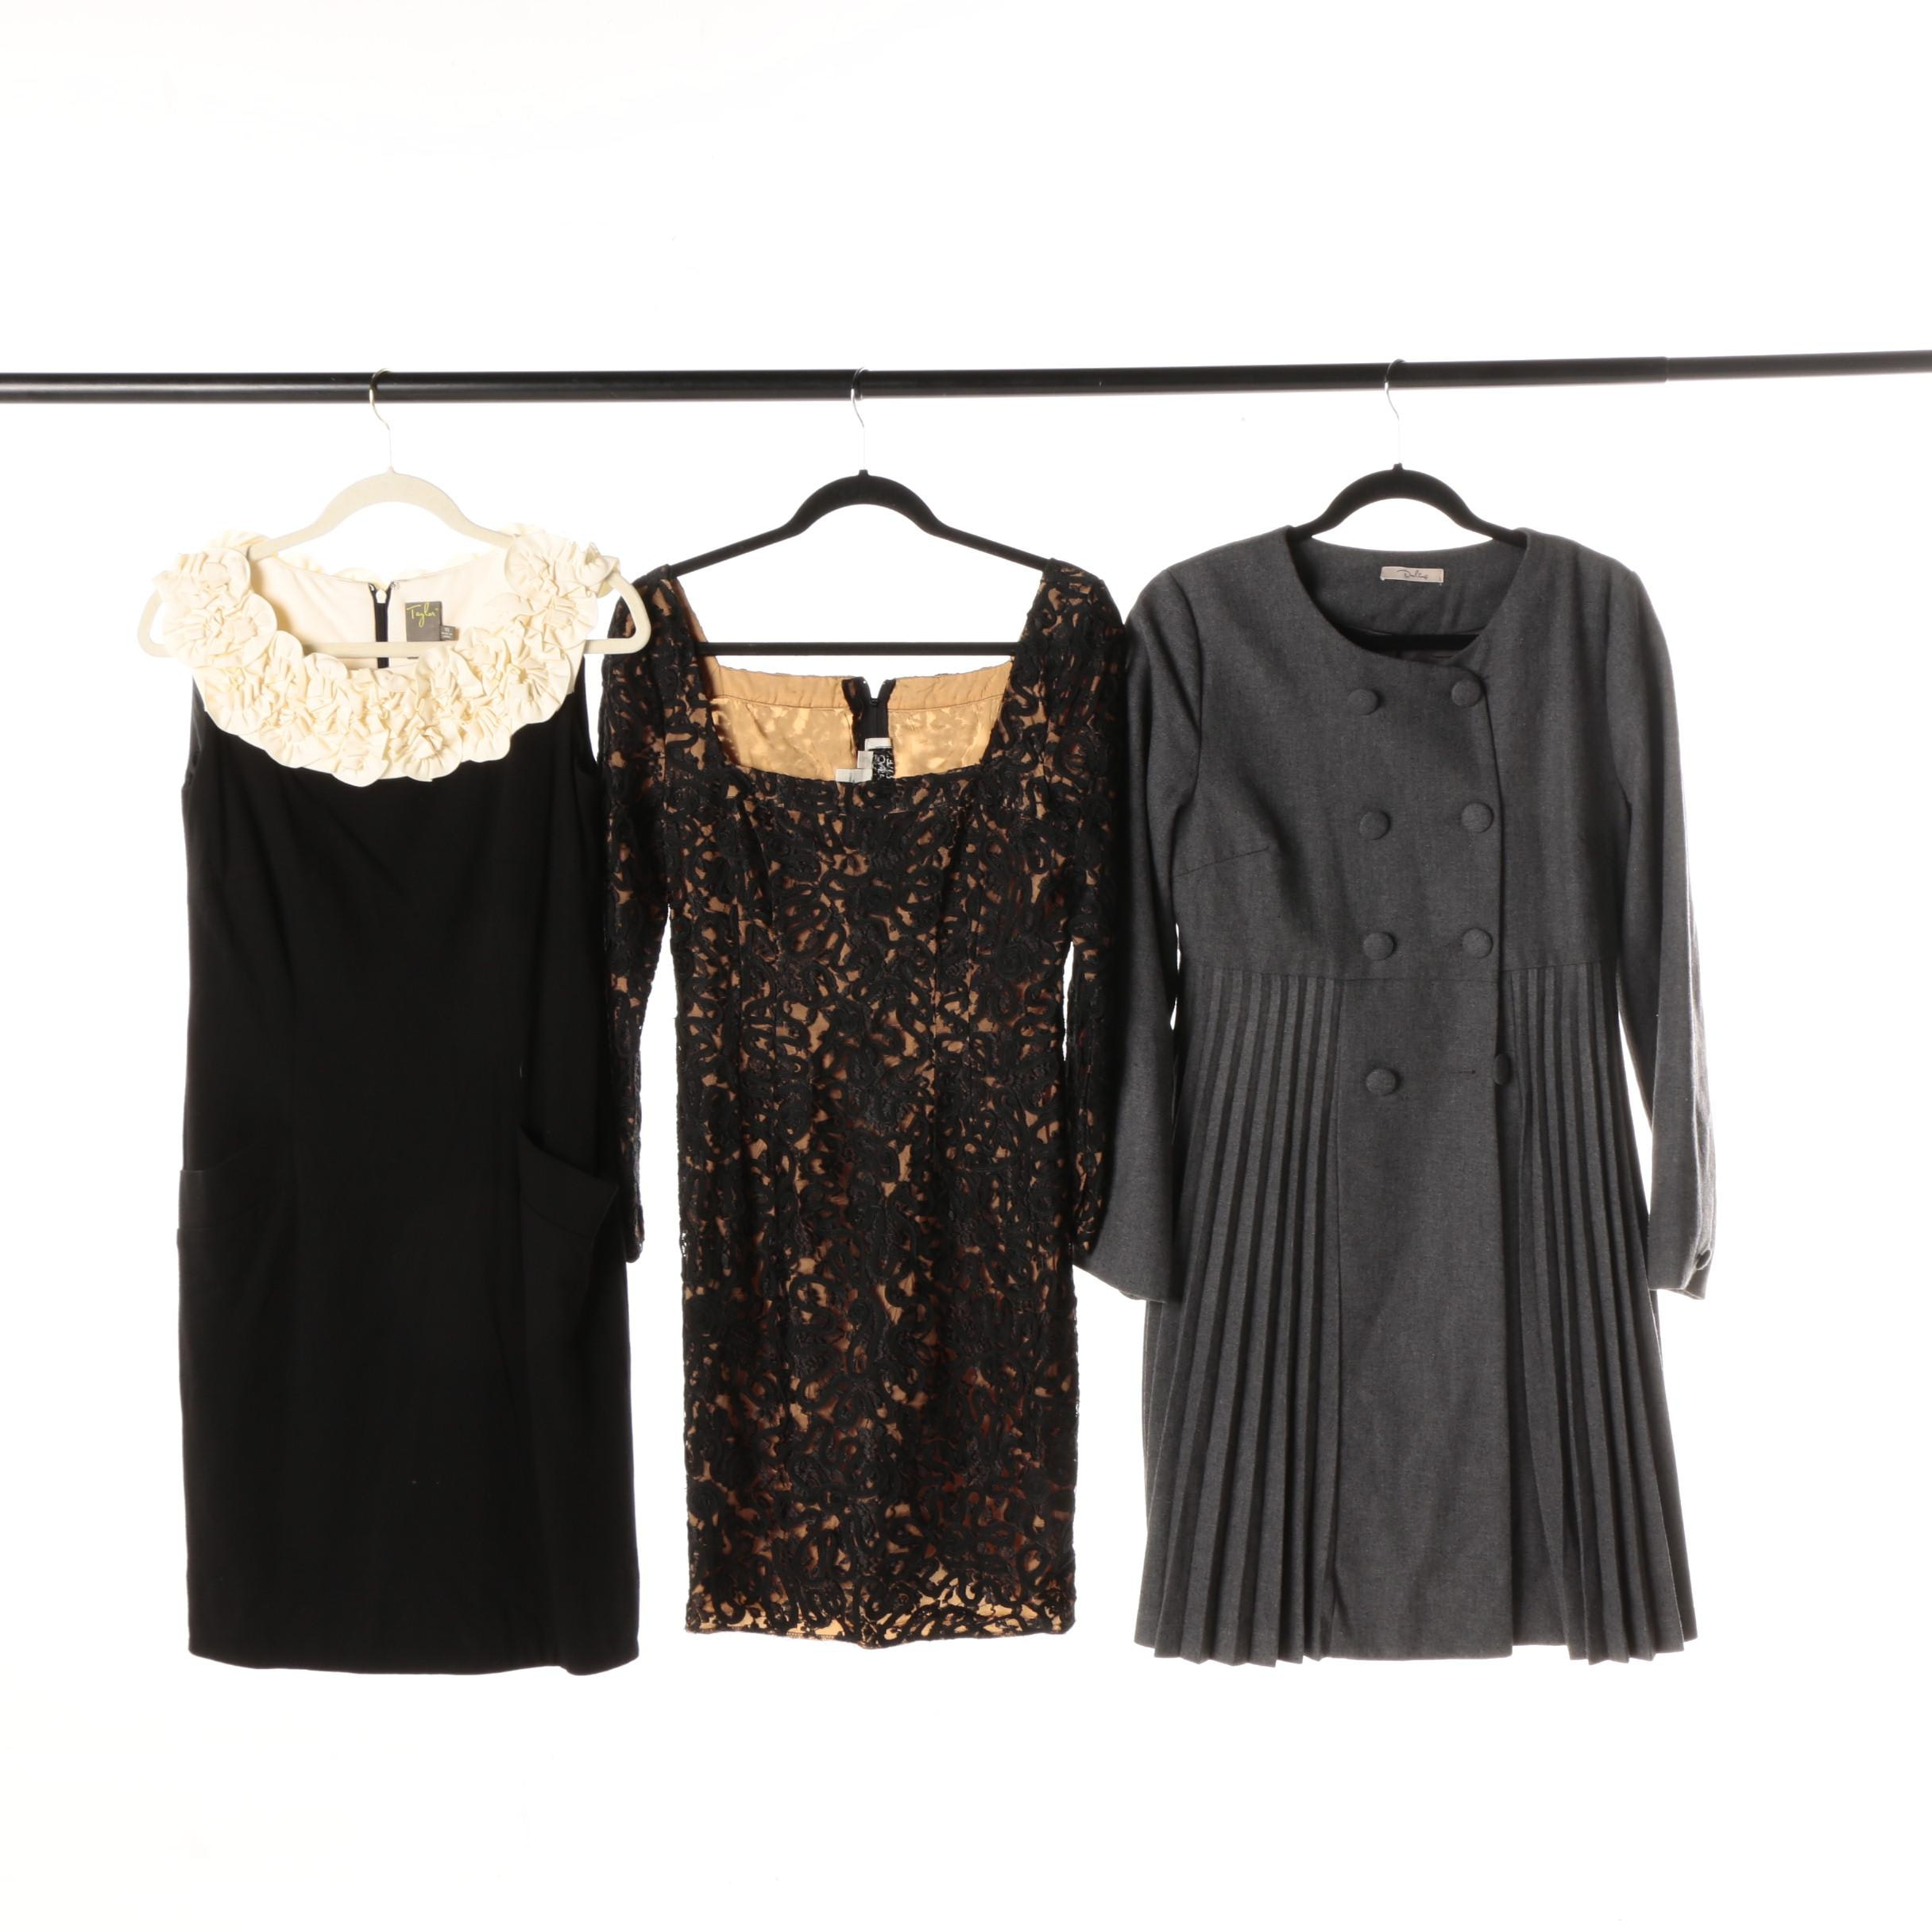 Women's Dresses with Carmen Marc Valvo